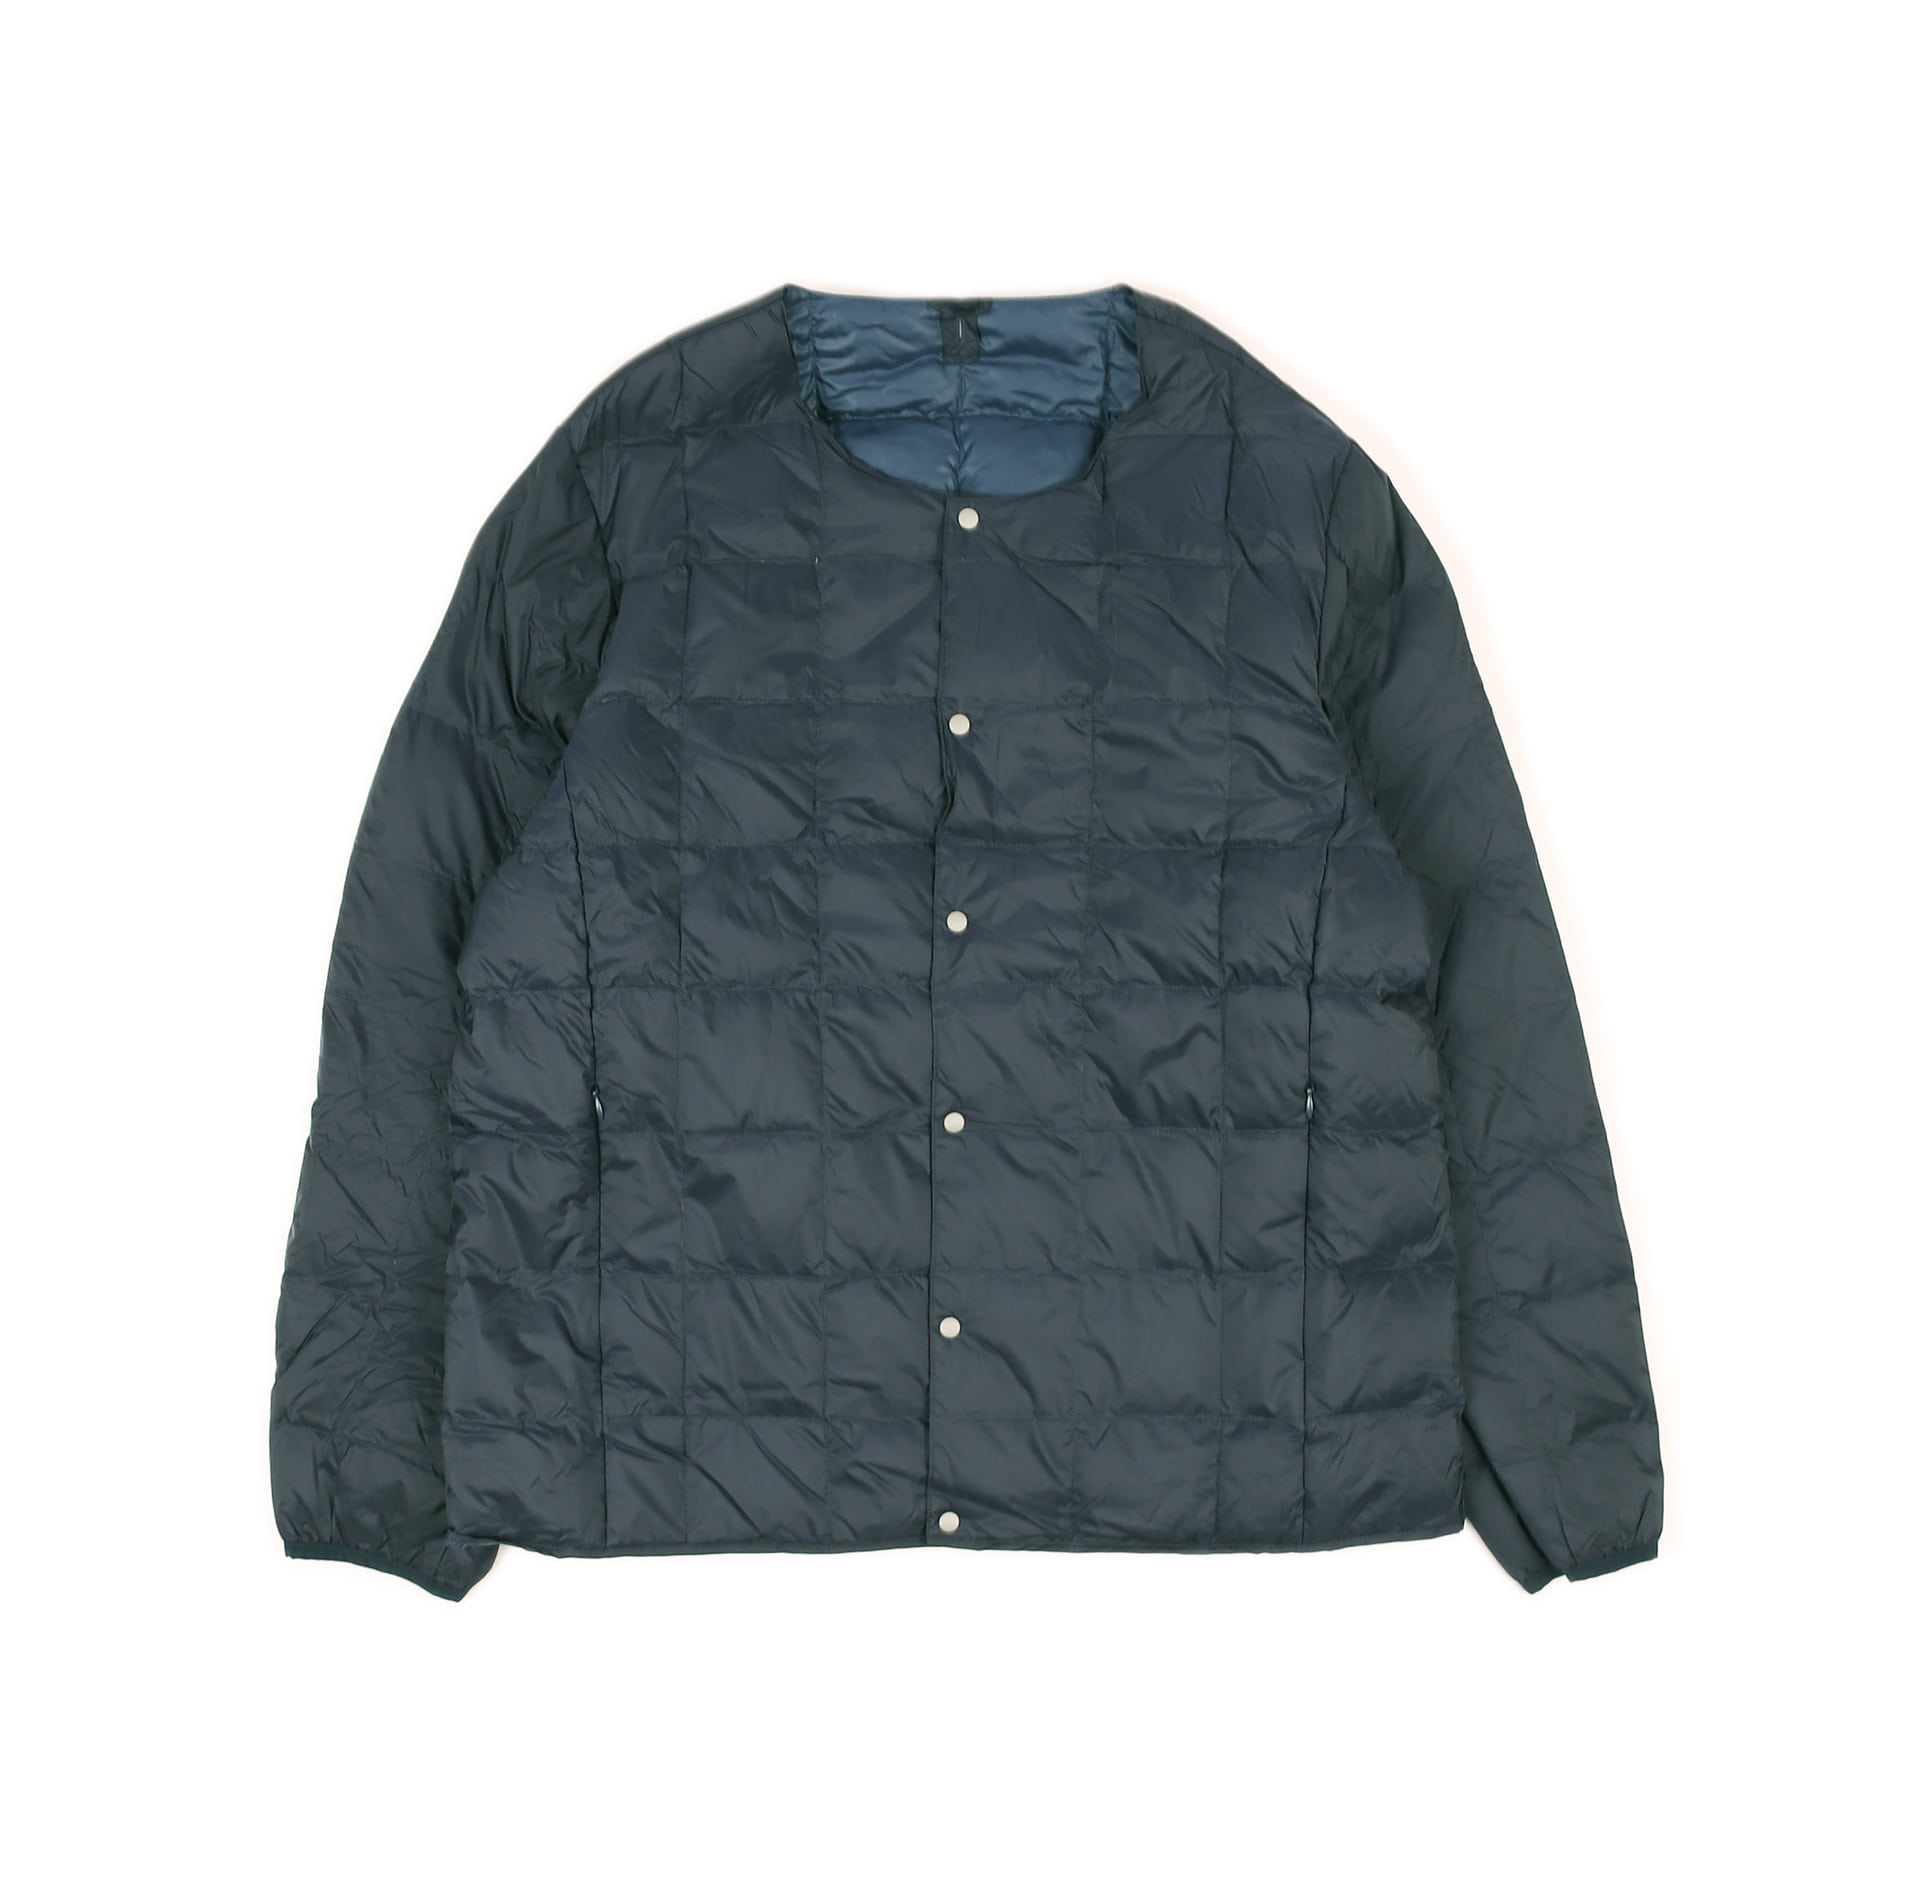 CREW NECK BUTTON DOWN JACKET TAION-104 (Navy)